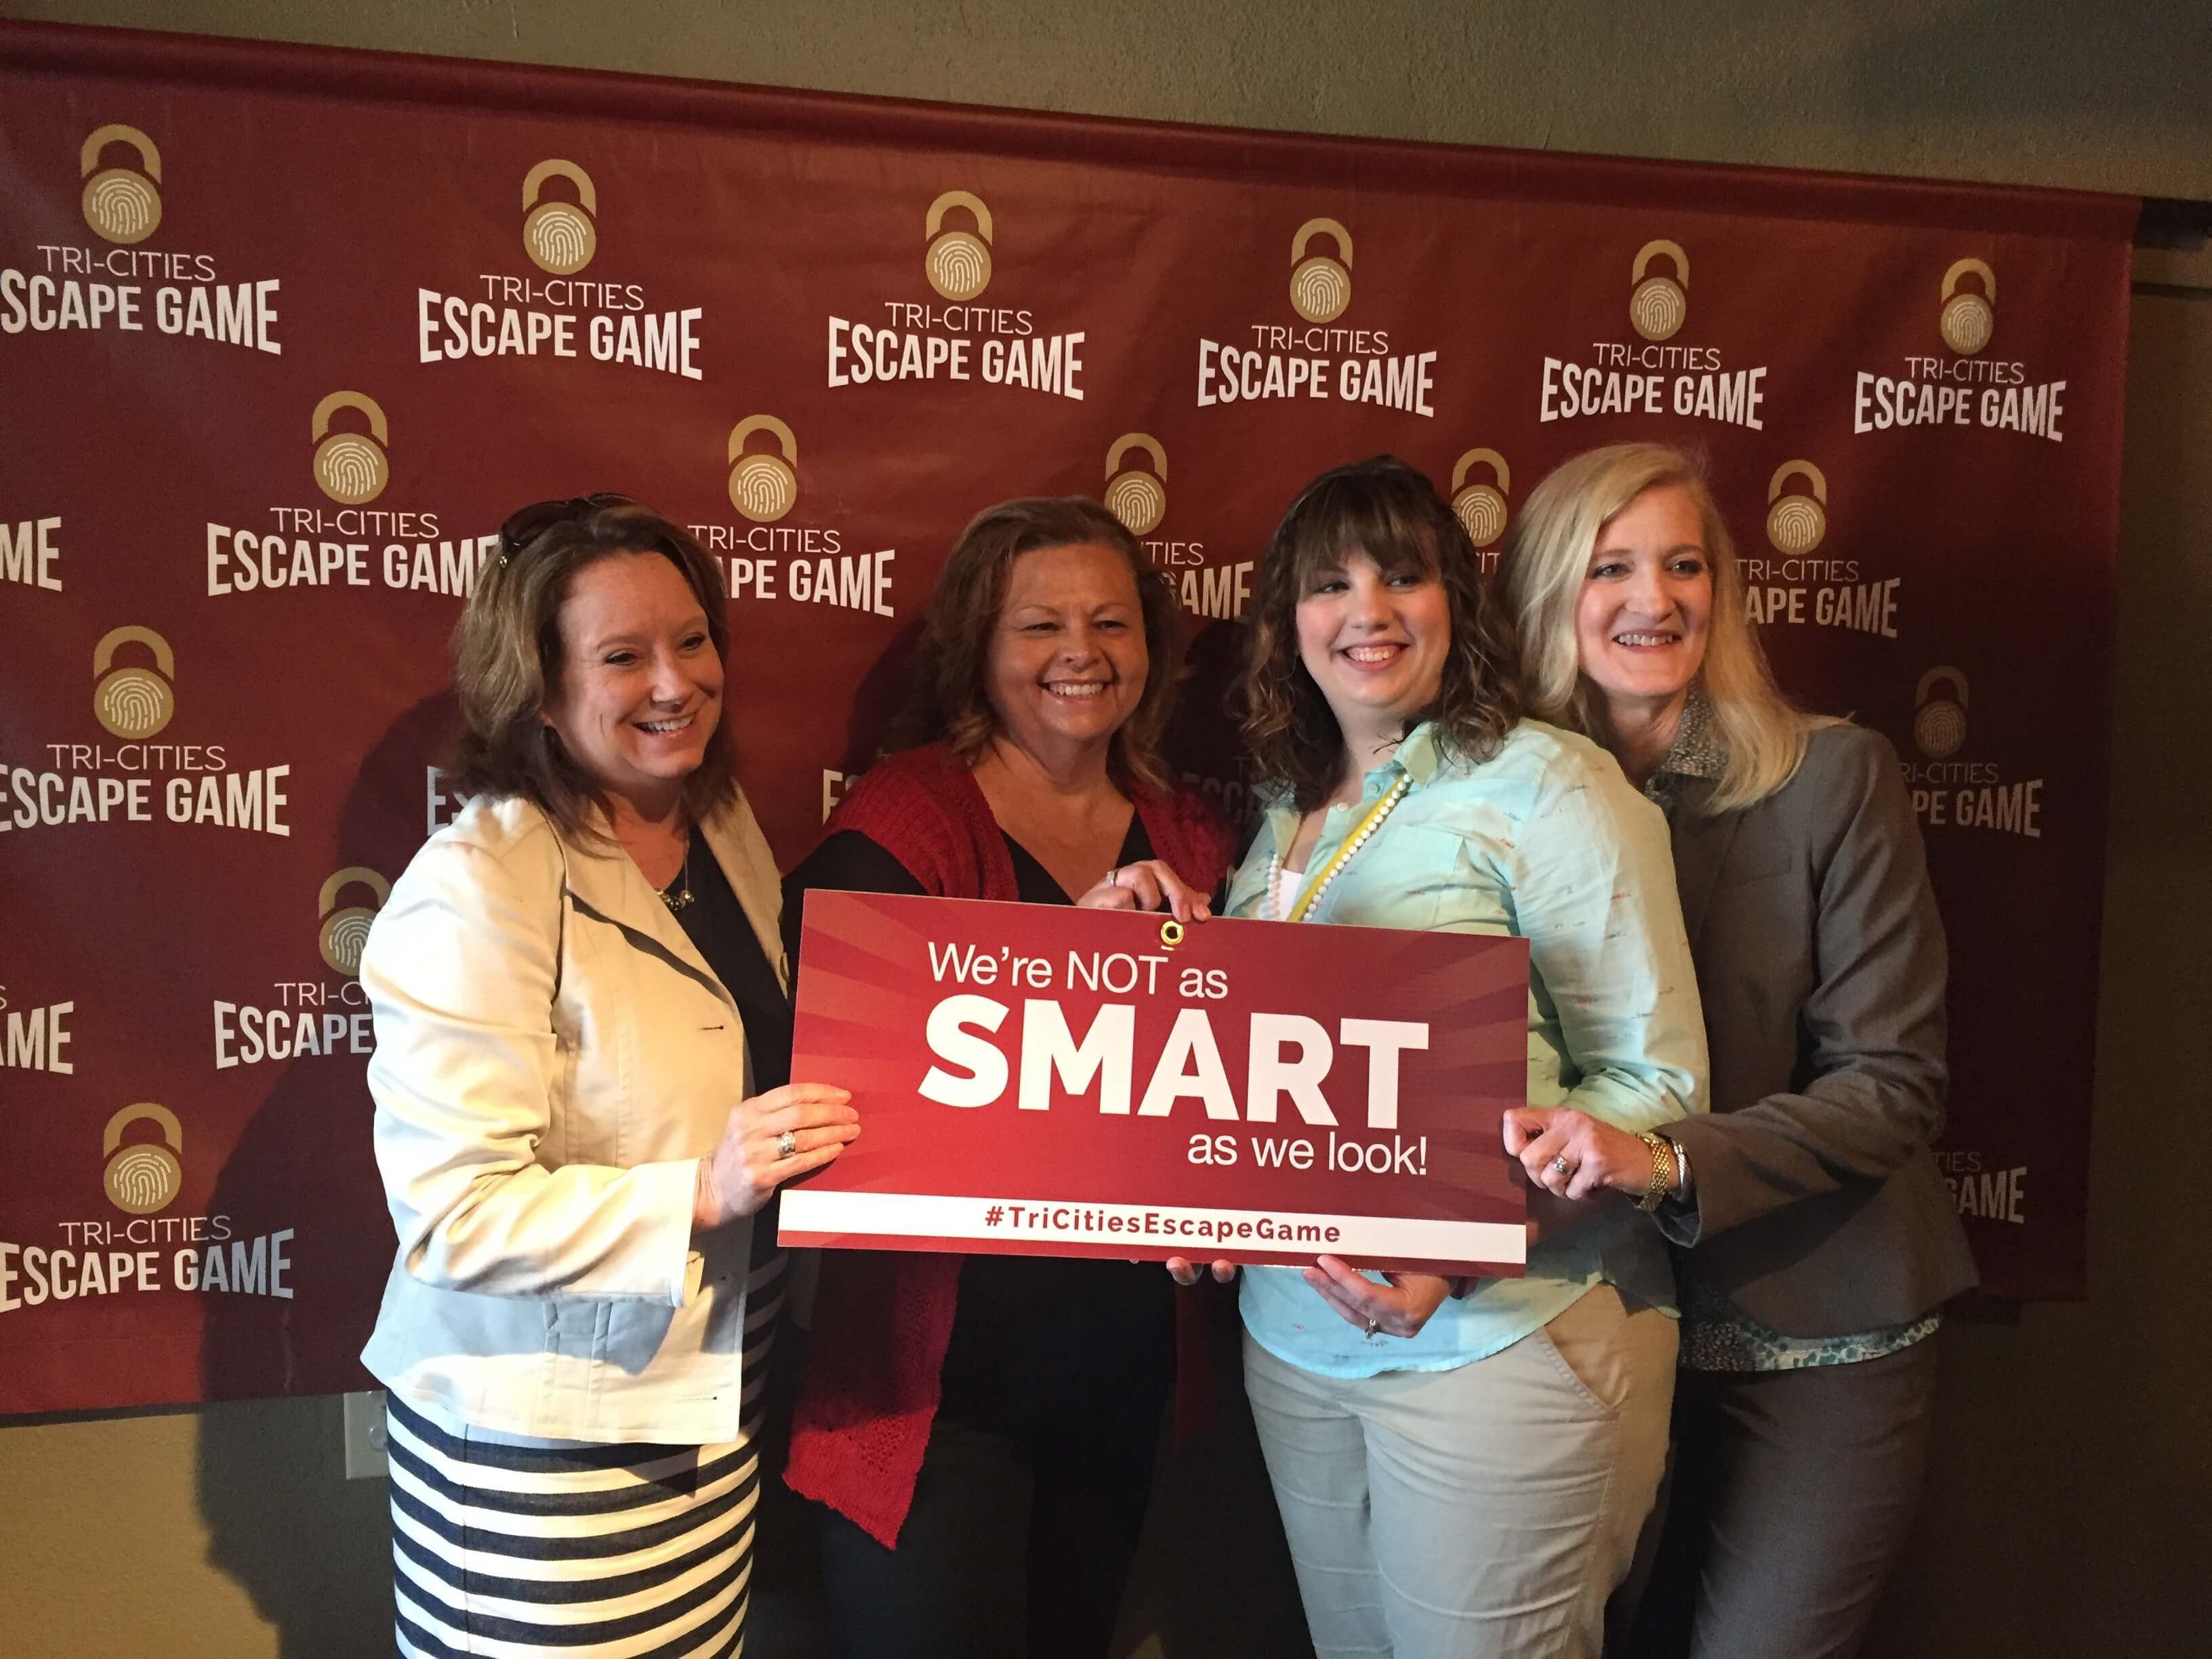 Tri-Cities Escape Game 4-28-16